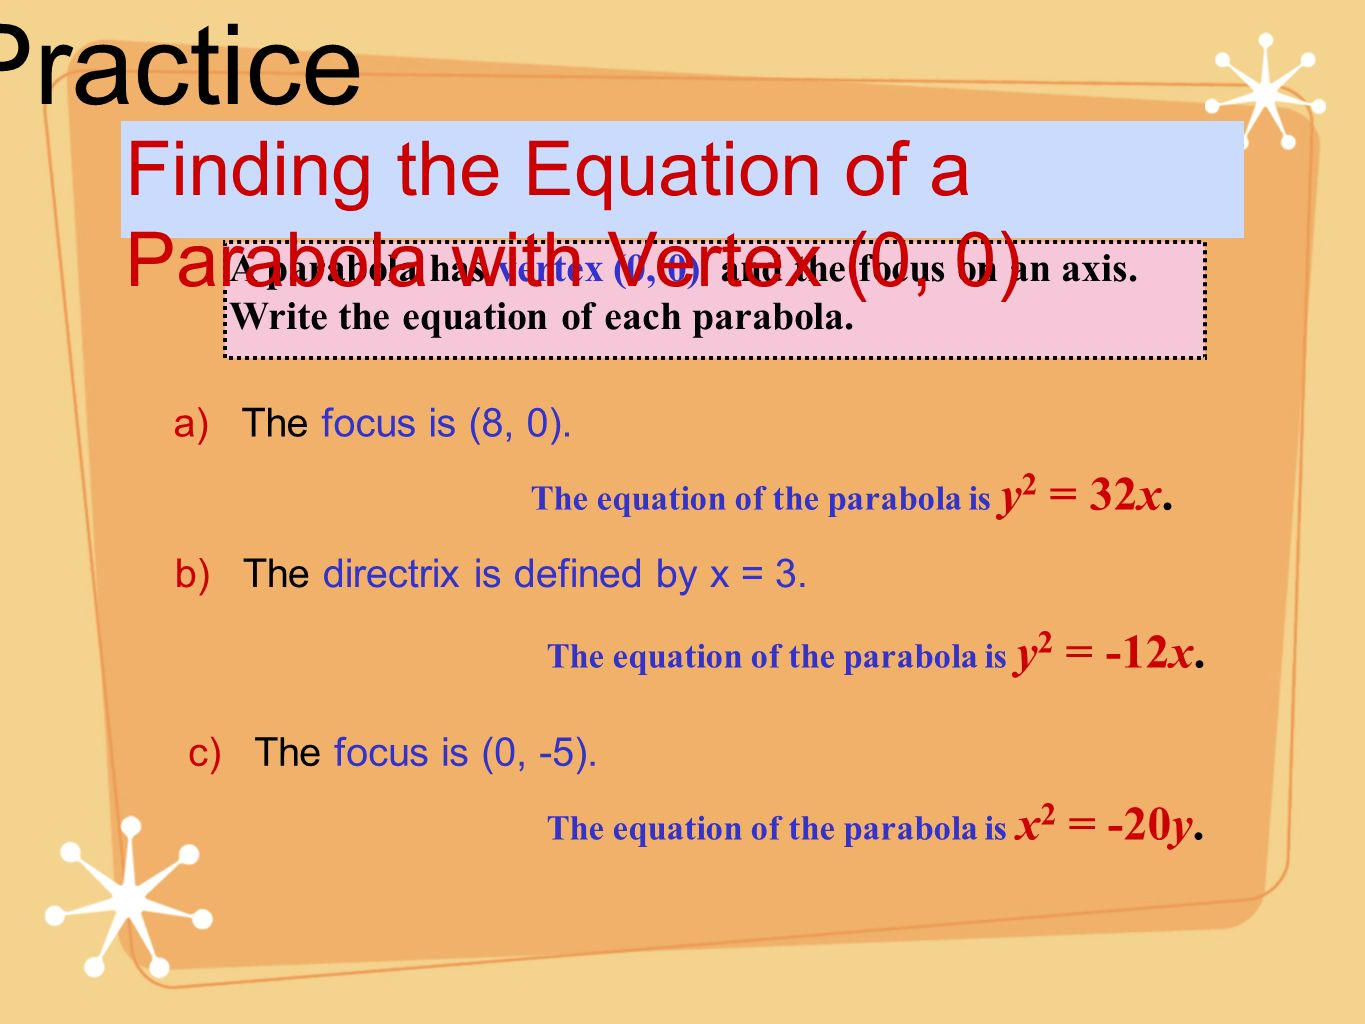 Practice A parabola has vertex (0, 0) and the focus on an axis. Write the equation of each parabola. Finding the Equation of a Parabola with Vertex (0